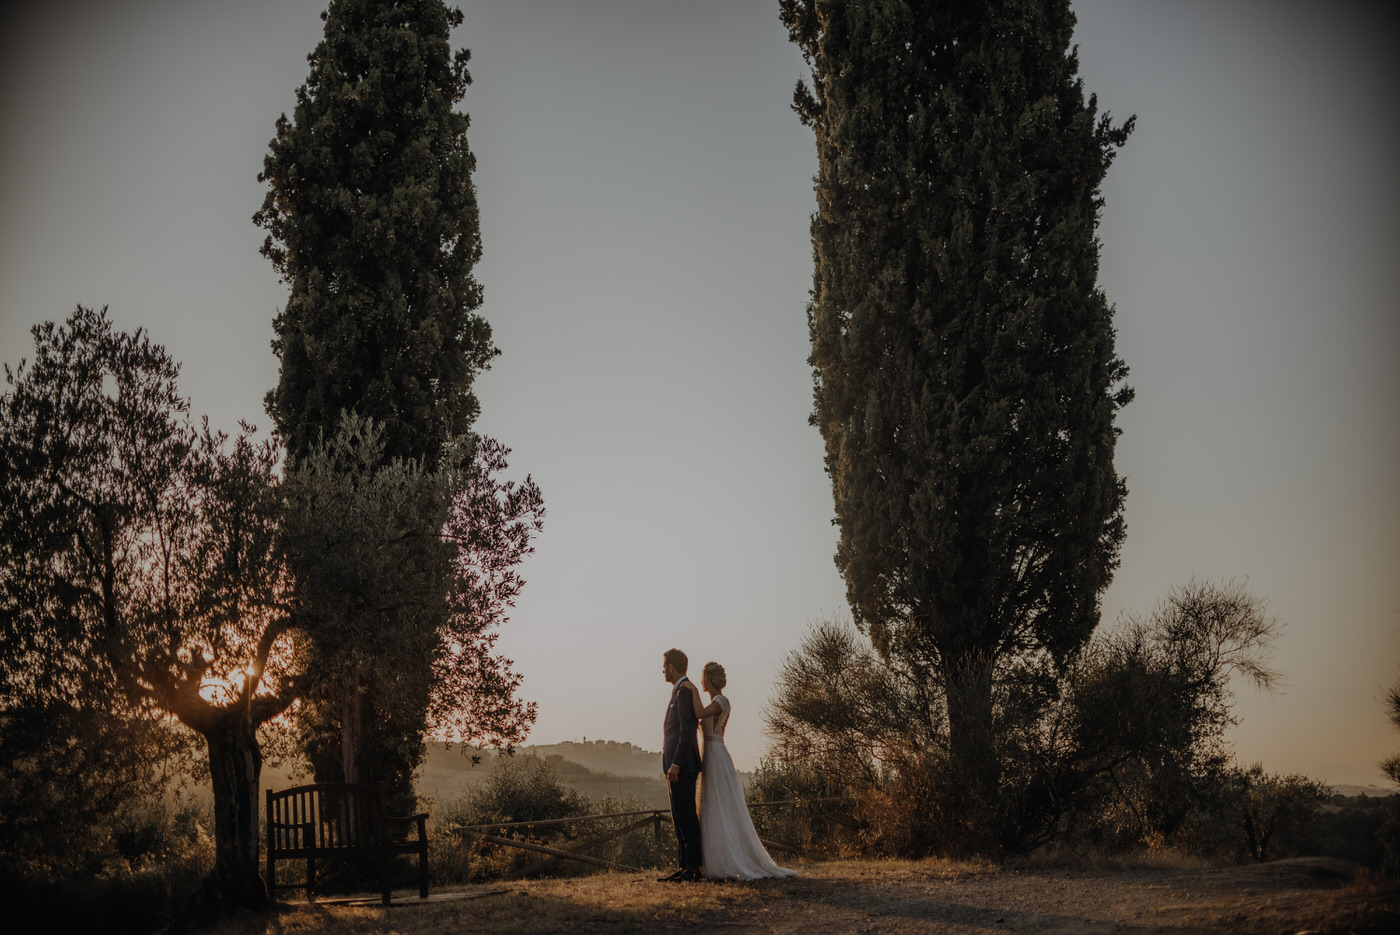 Destination wedding from the Netherlands to Tuscany